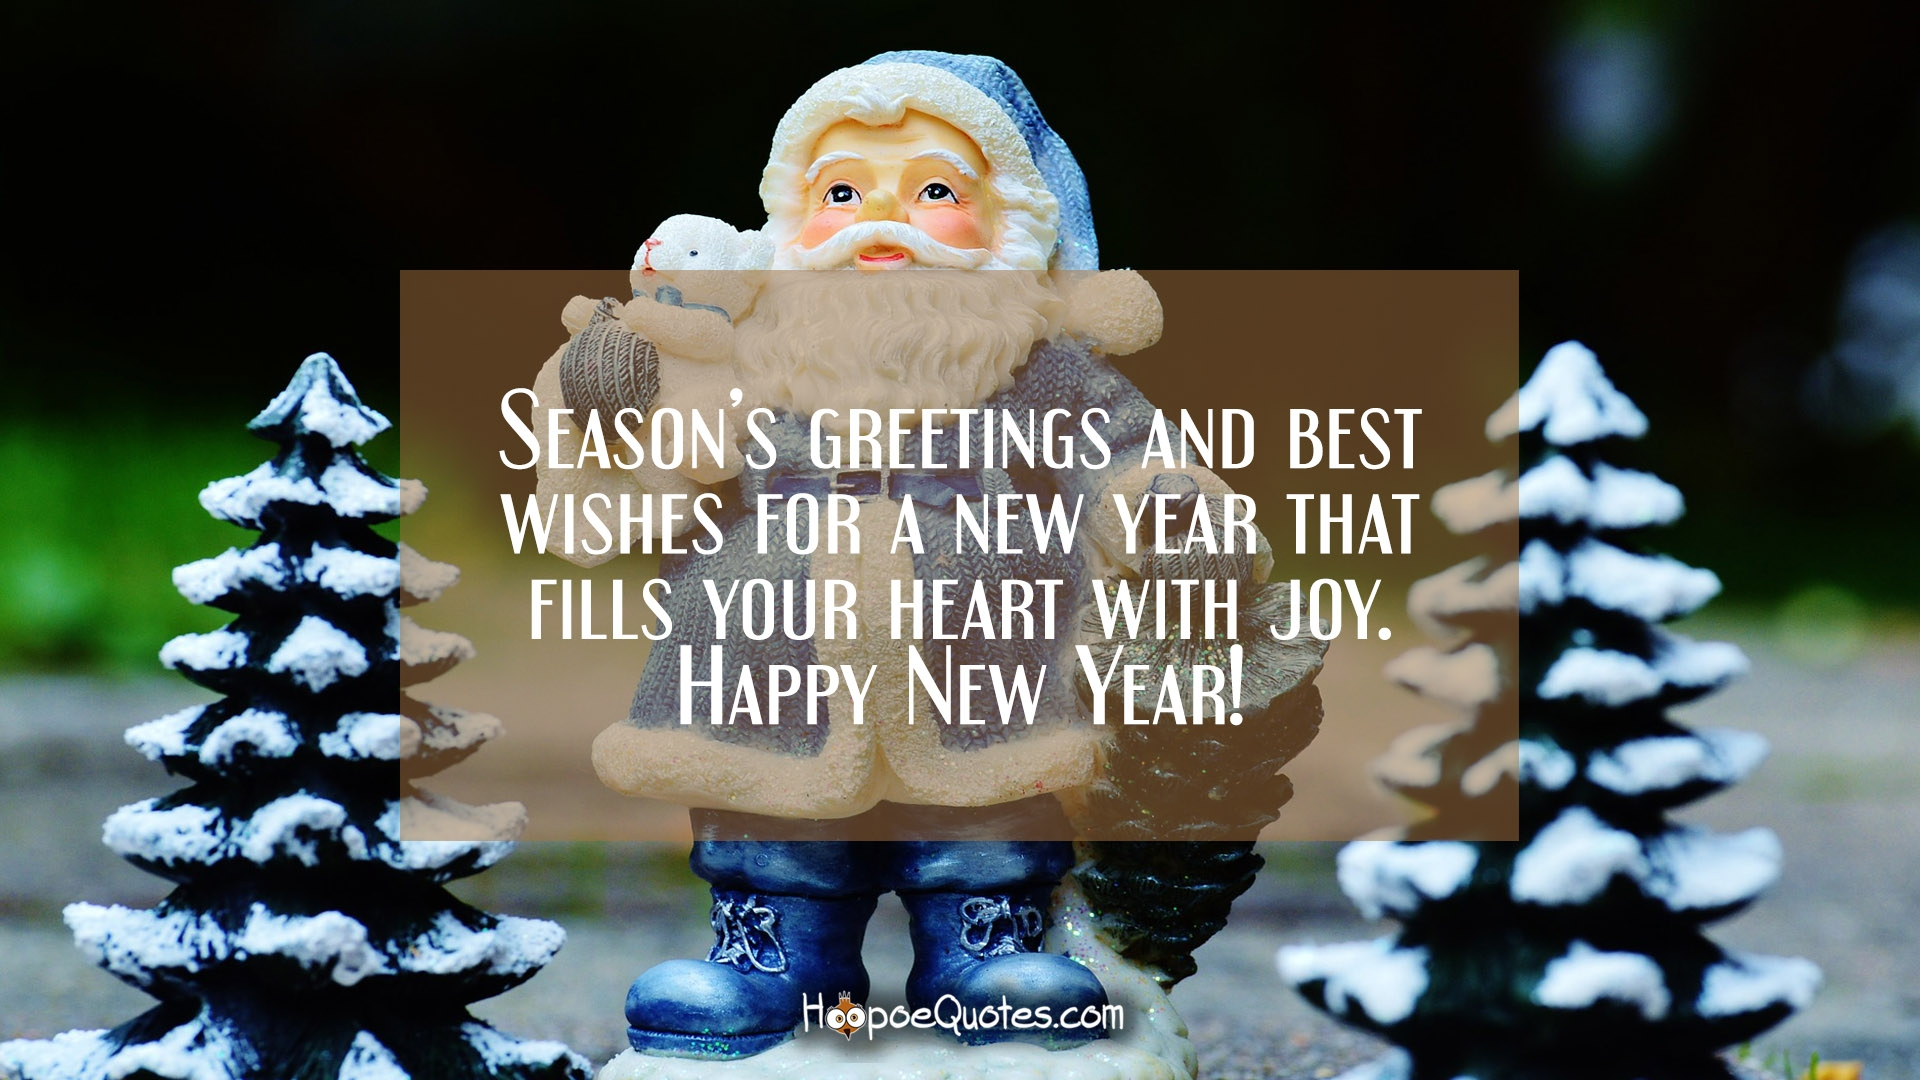 Seasons Greetings And Best Wishes For A New Year That Fills Your